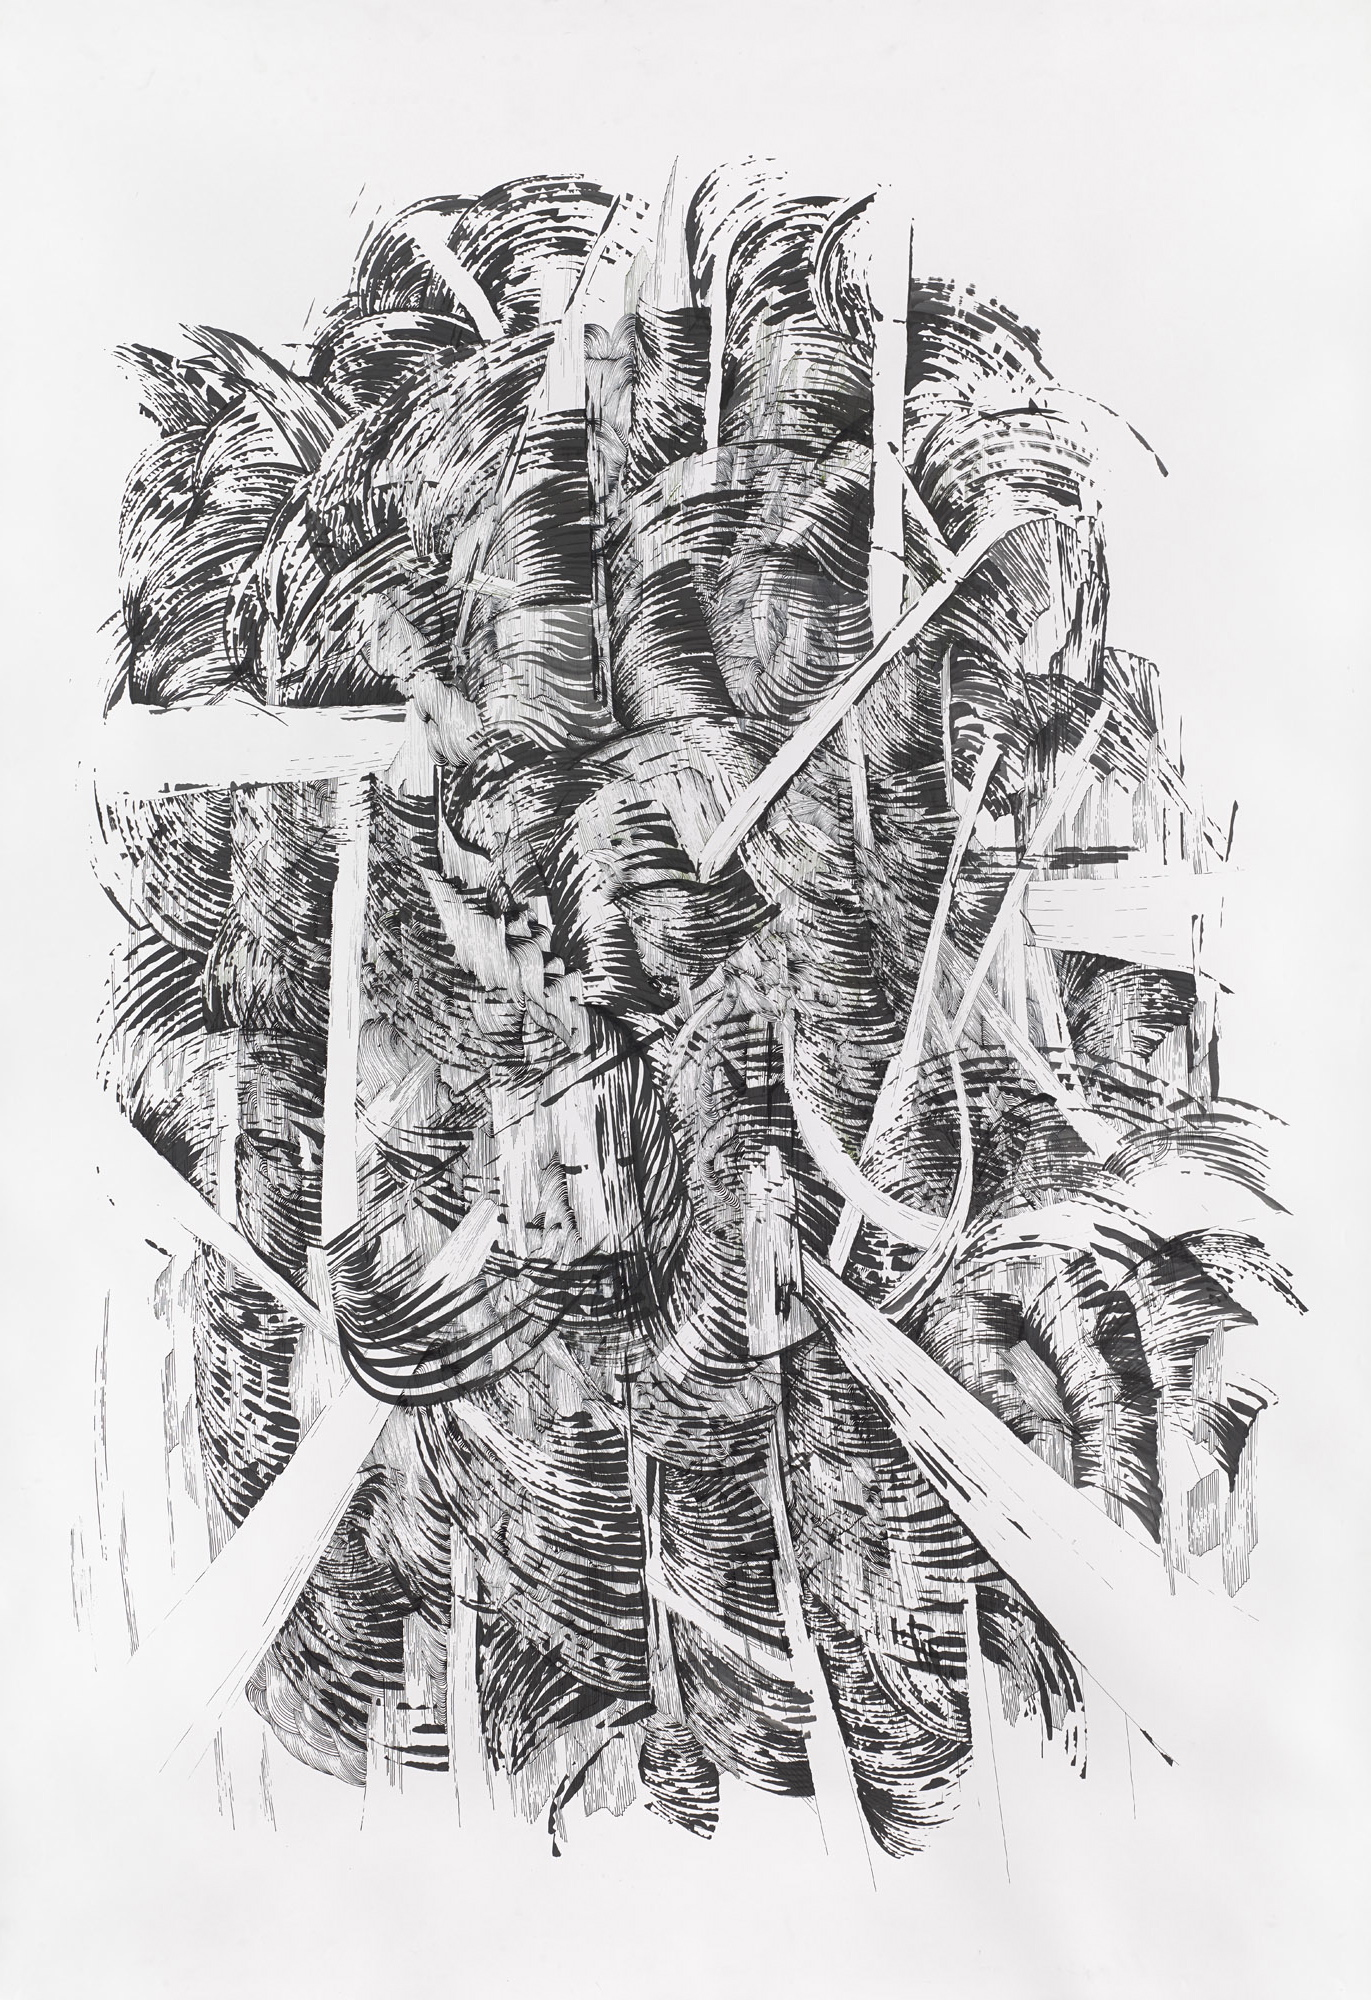 BK P164 1 | untitled | ink on paper | 200x150cm | 2014 | private collection stuttgart